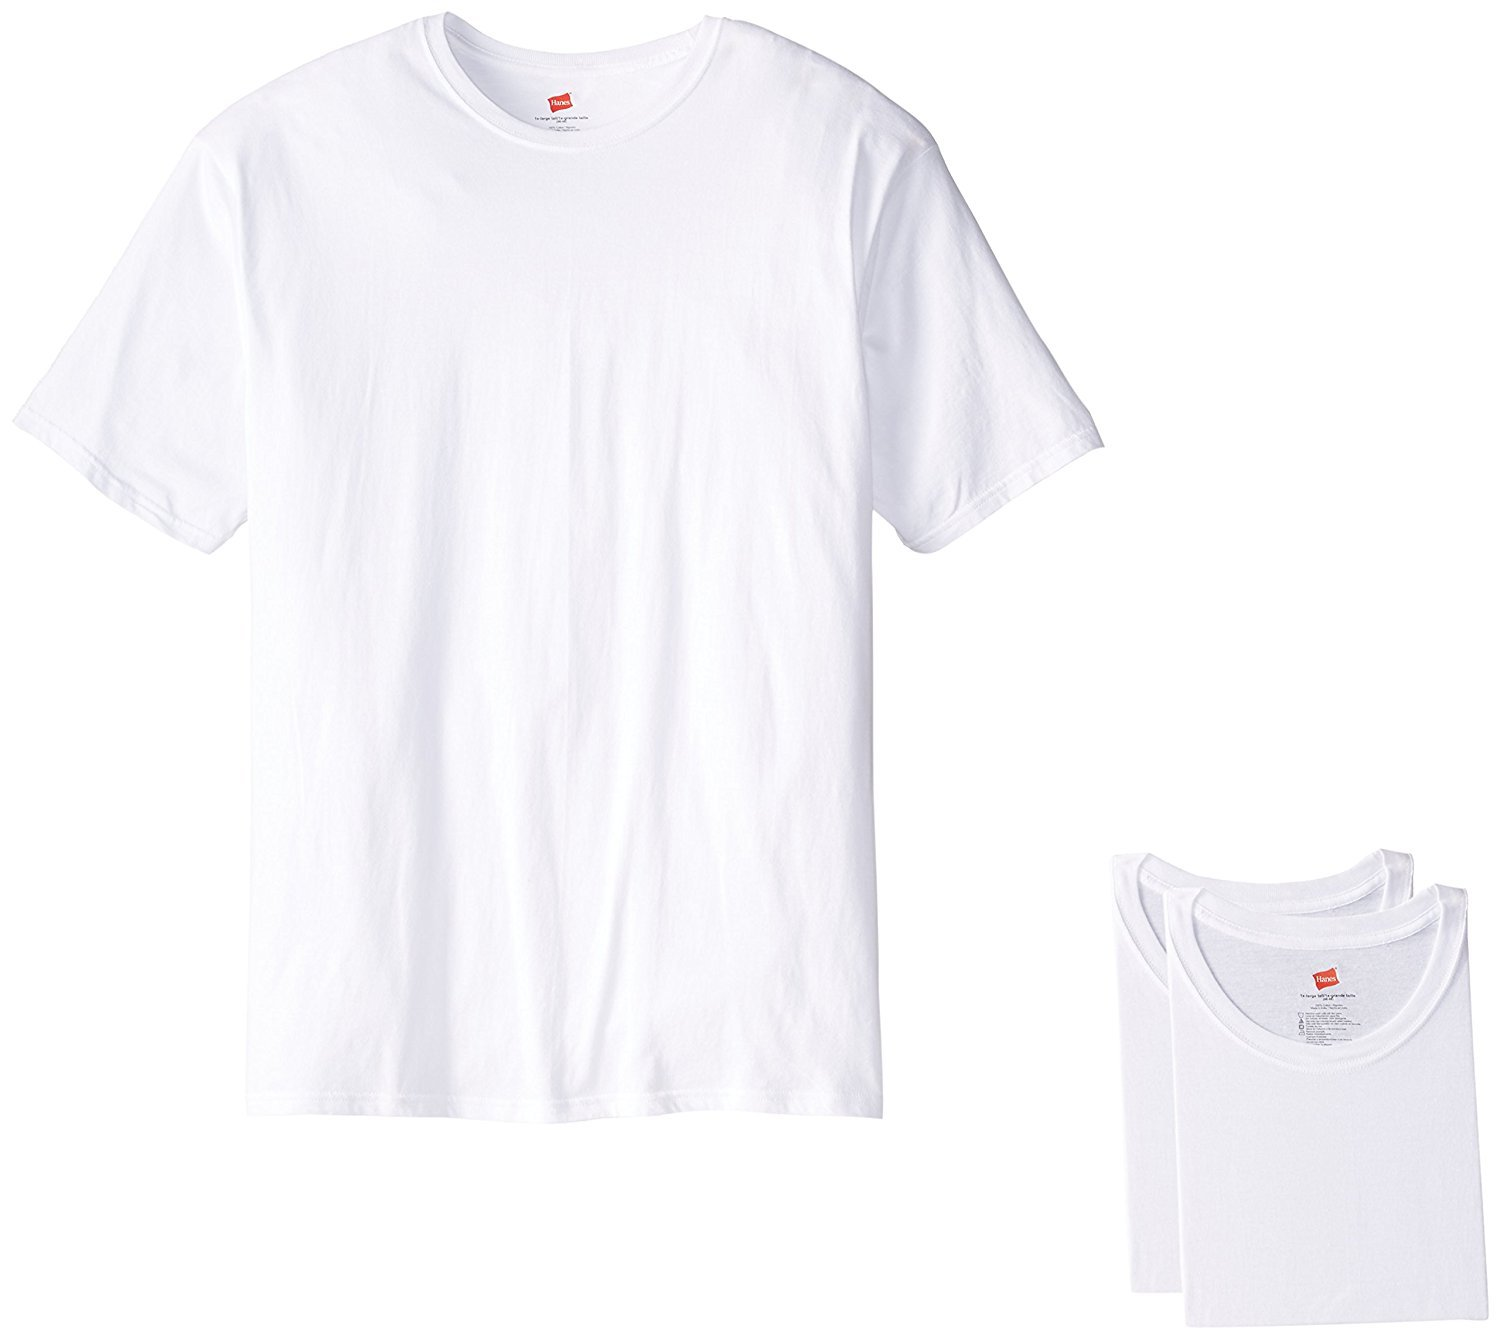 Hanes Men's Tall Man Crew T-Shirt (Pack of 3) (XXXXX-Large, White) by Hanes